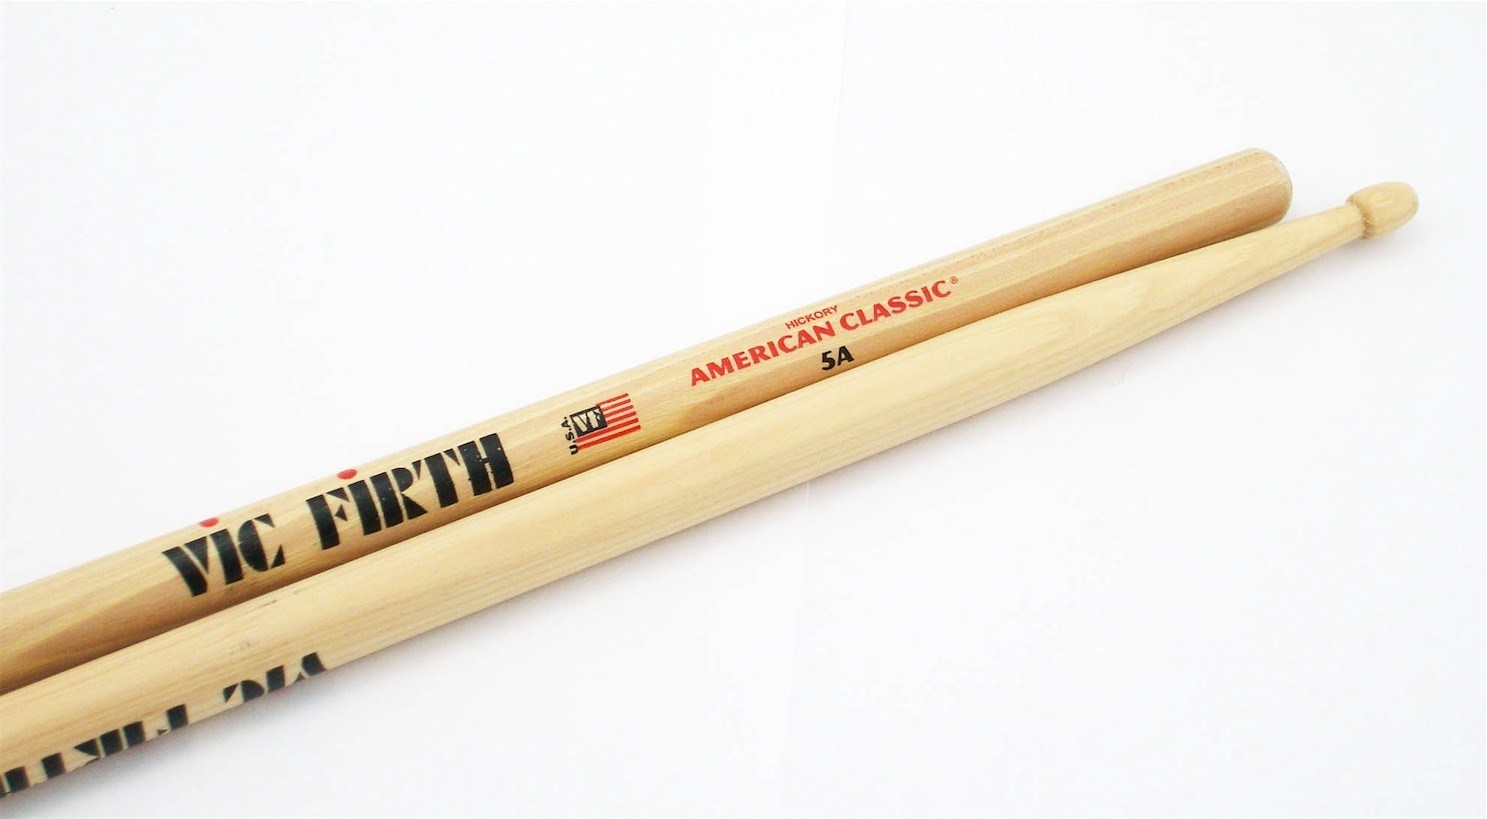 vic firth 5a snare drum sticks. Black Bedroom Furniture Sets. Home Design Ideas